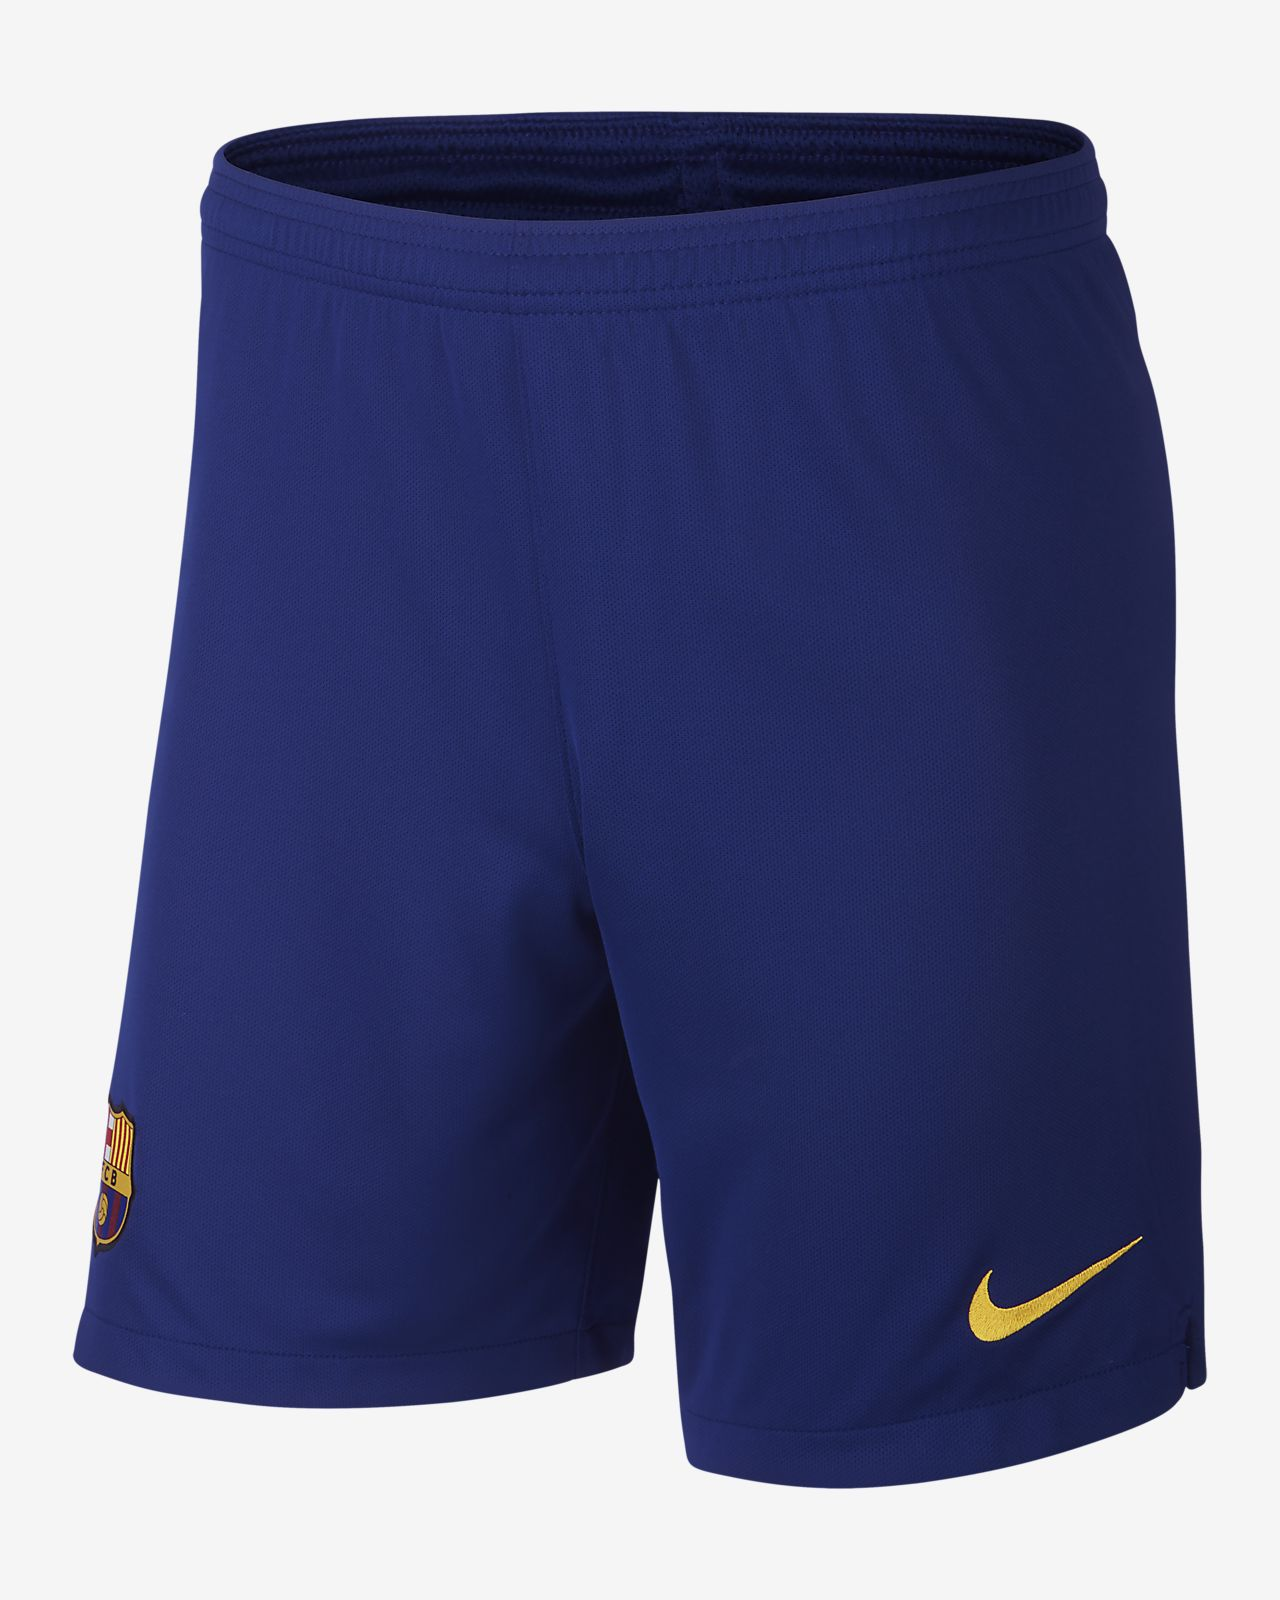 FC Barcelona 2019/20 Stadium Home/Away Men's Football Shorts